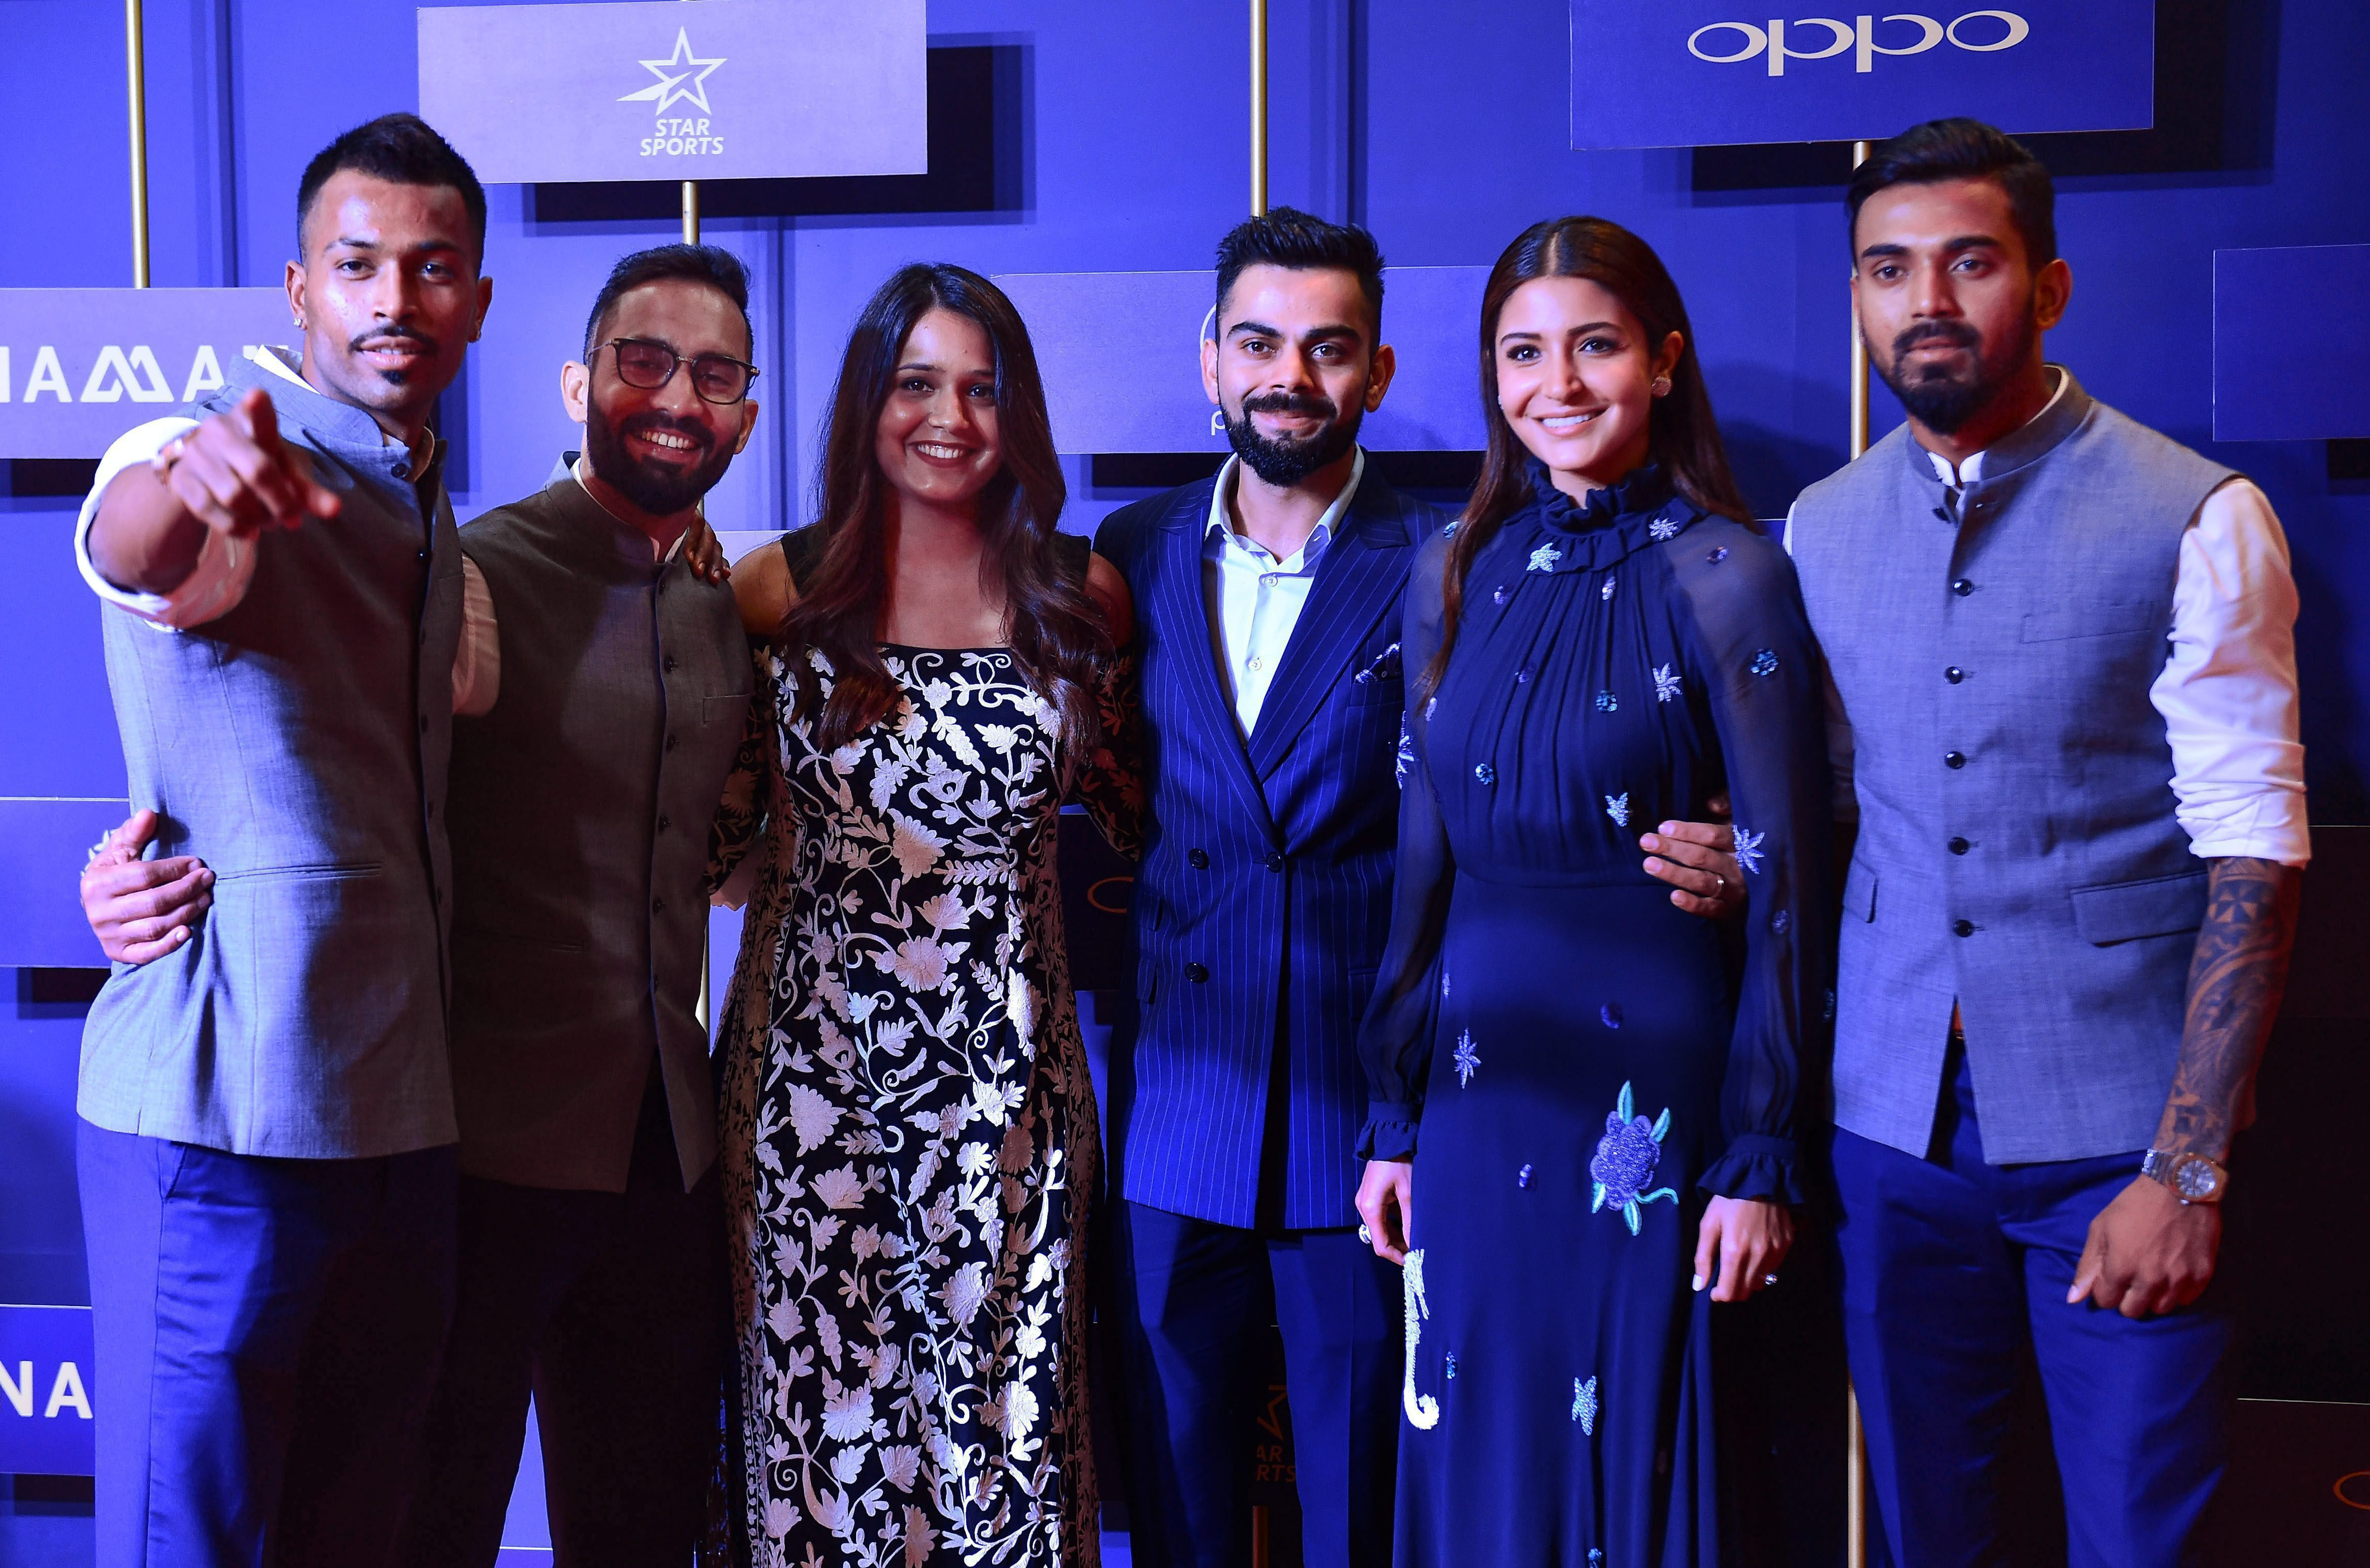 (L-R) India cricketer Hardik Pandya, wicketkeeper Dinesh Karthik with his wife and squash star Dipika Pallikal, Indian cricket captain Virat Kohli with his wife and Bollywood actor Anushka Sharma and cricketer KL Rahul pose for a group photograph during the BCCI annual awards, in Bengaluru on Tuesday. Photo: PTI